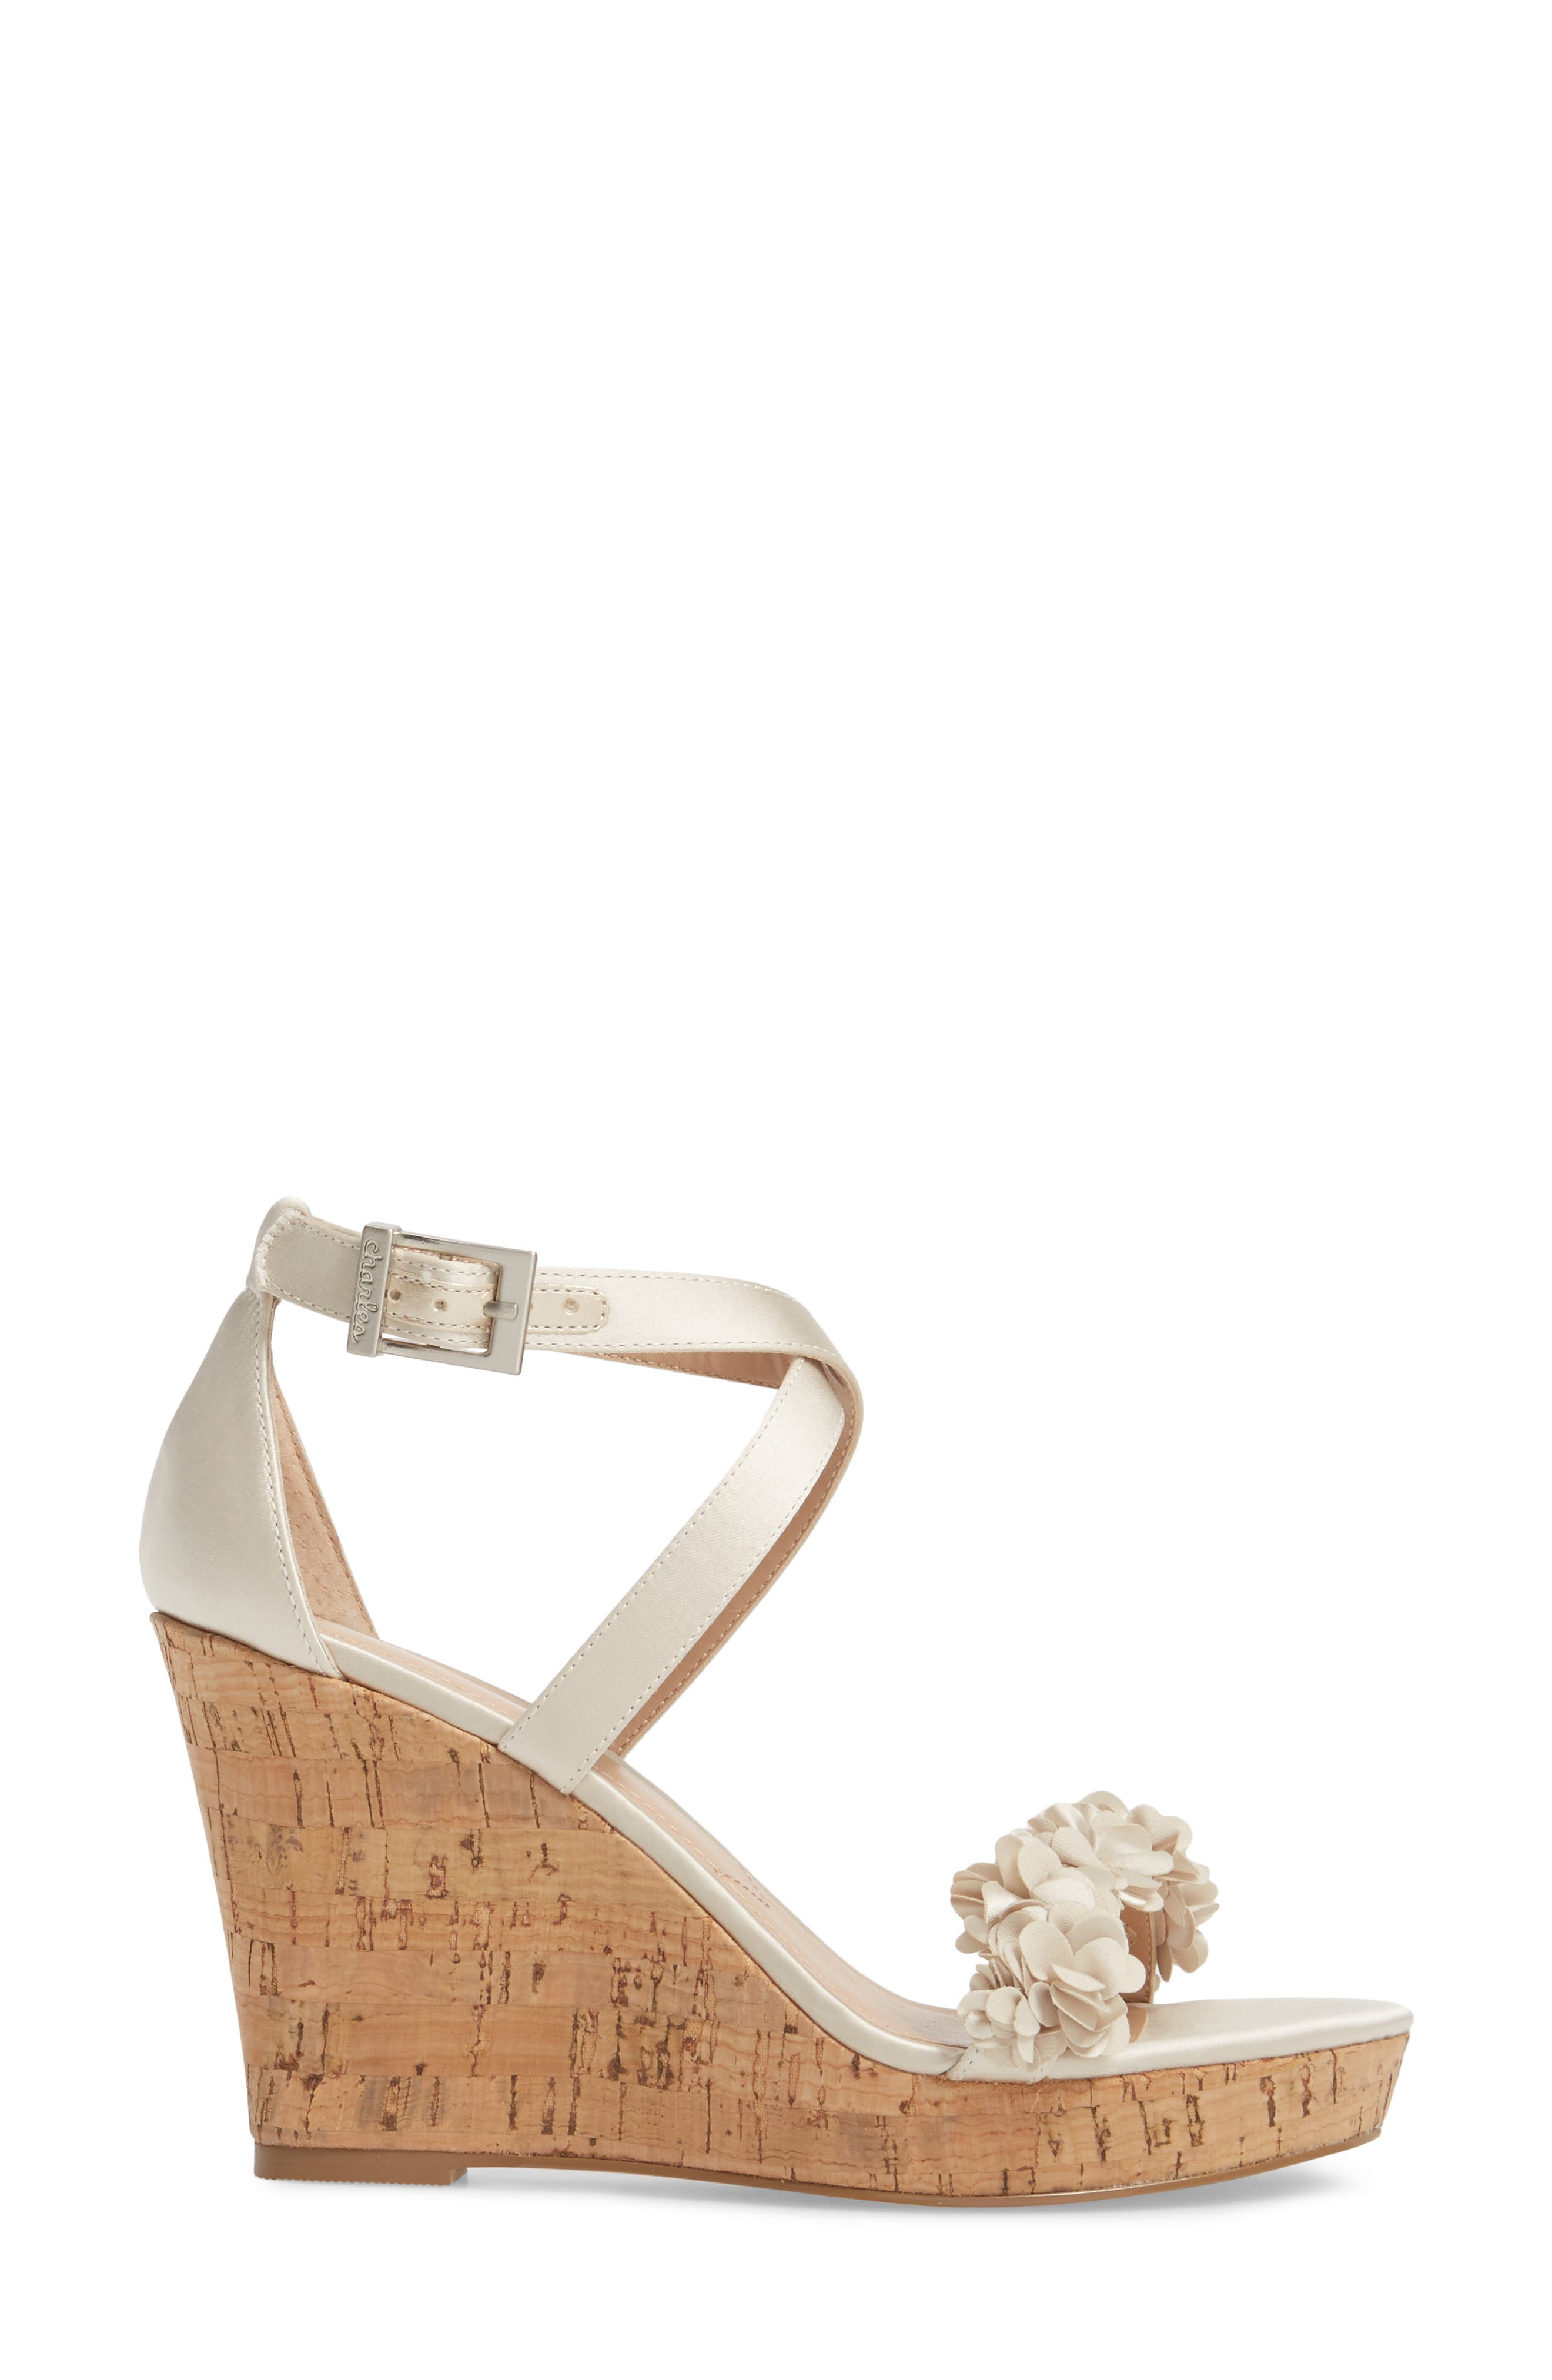 Lauryn Wedge Sandal,                             Alternate thumbnail 3, color,                             Ivory Satin